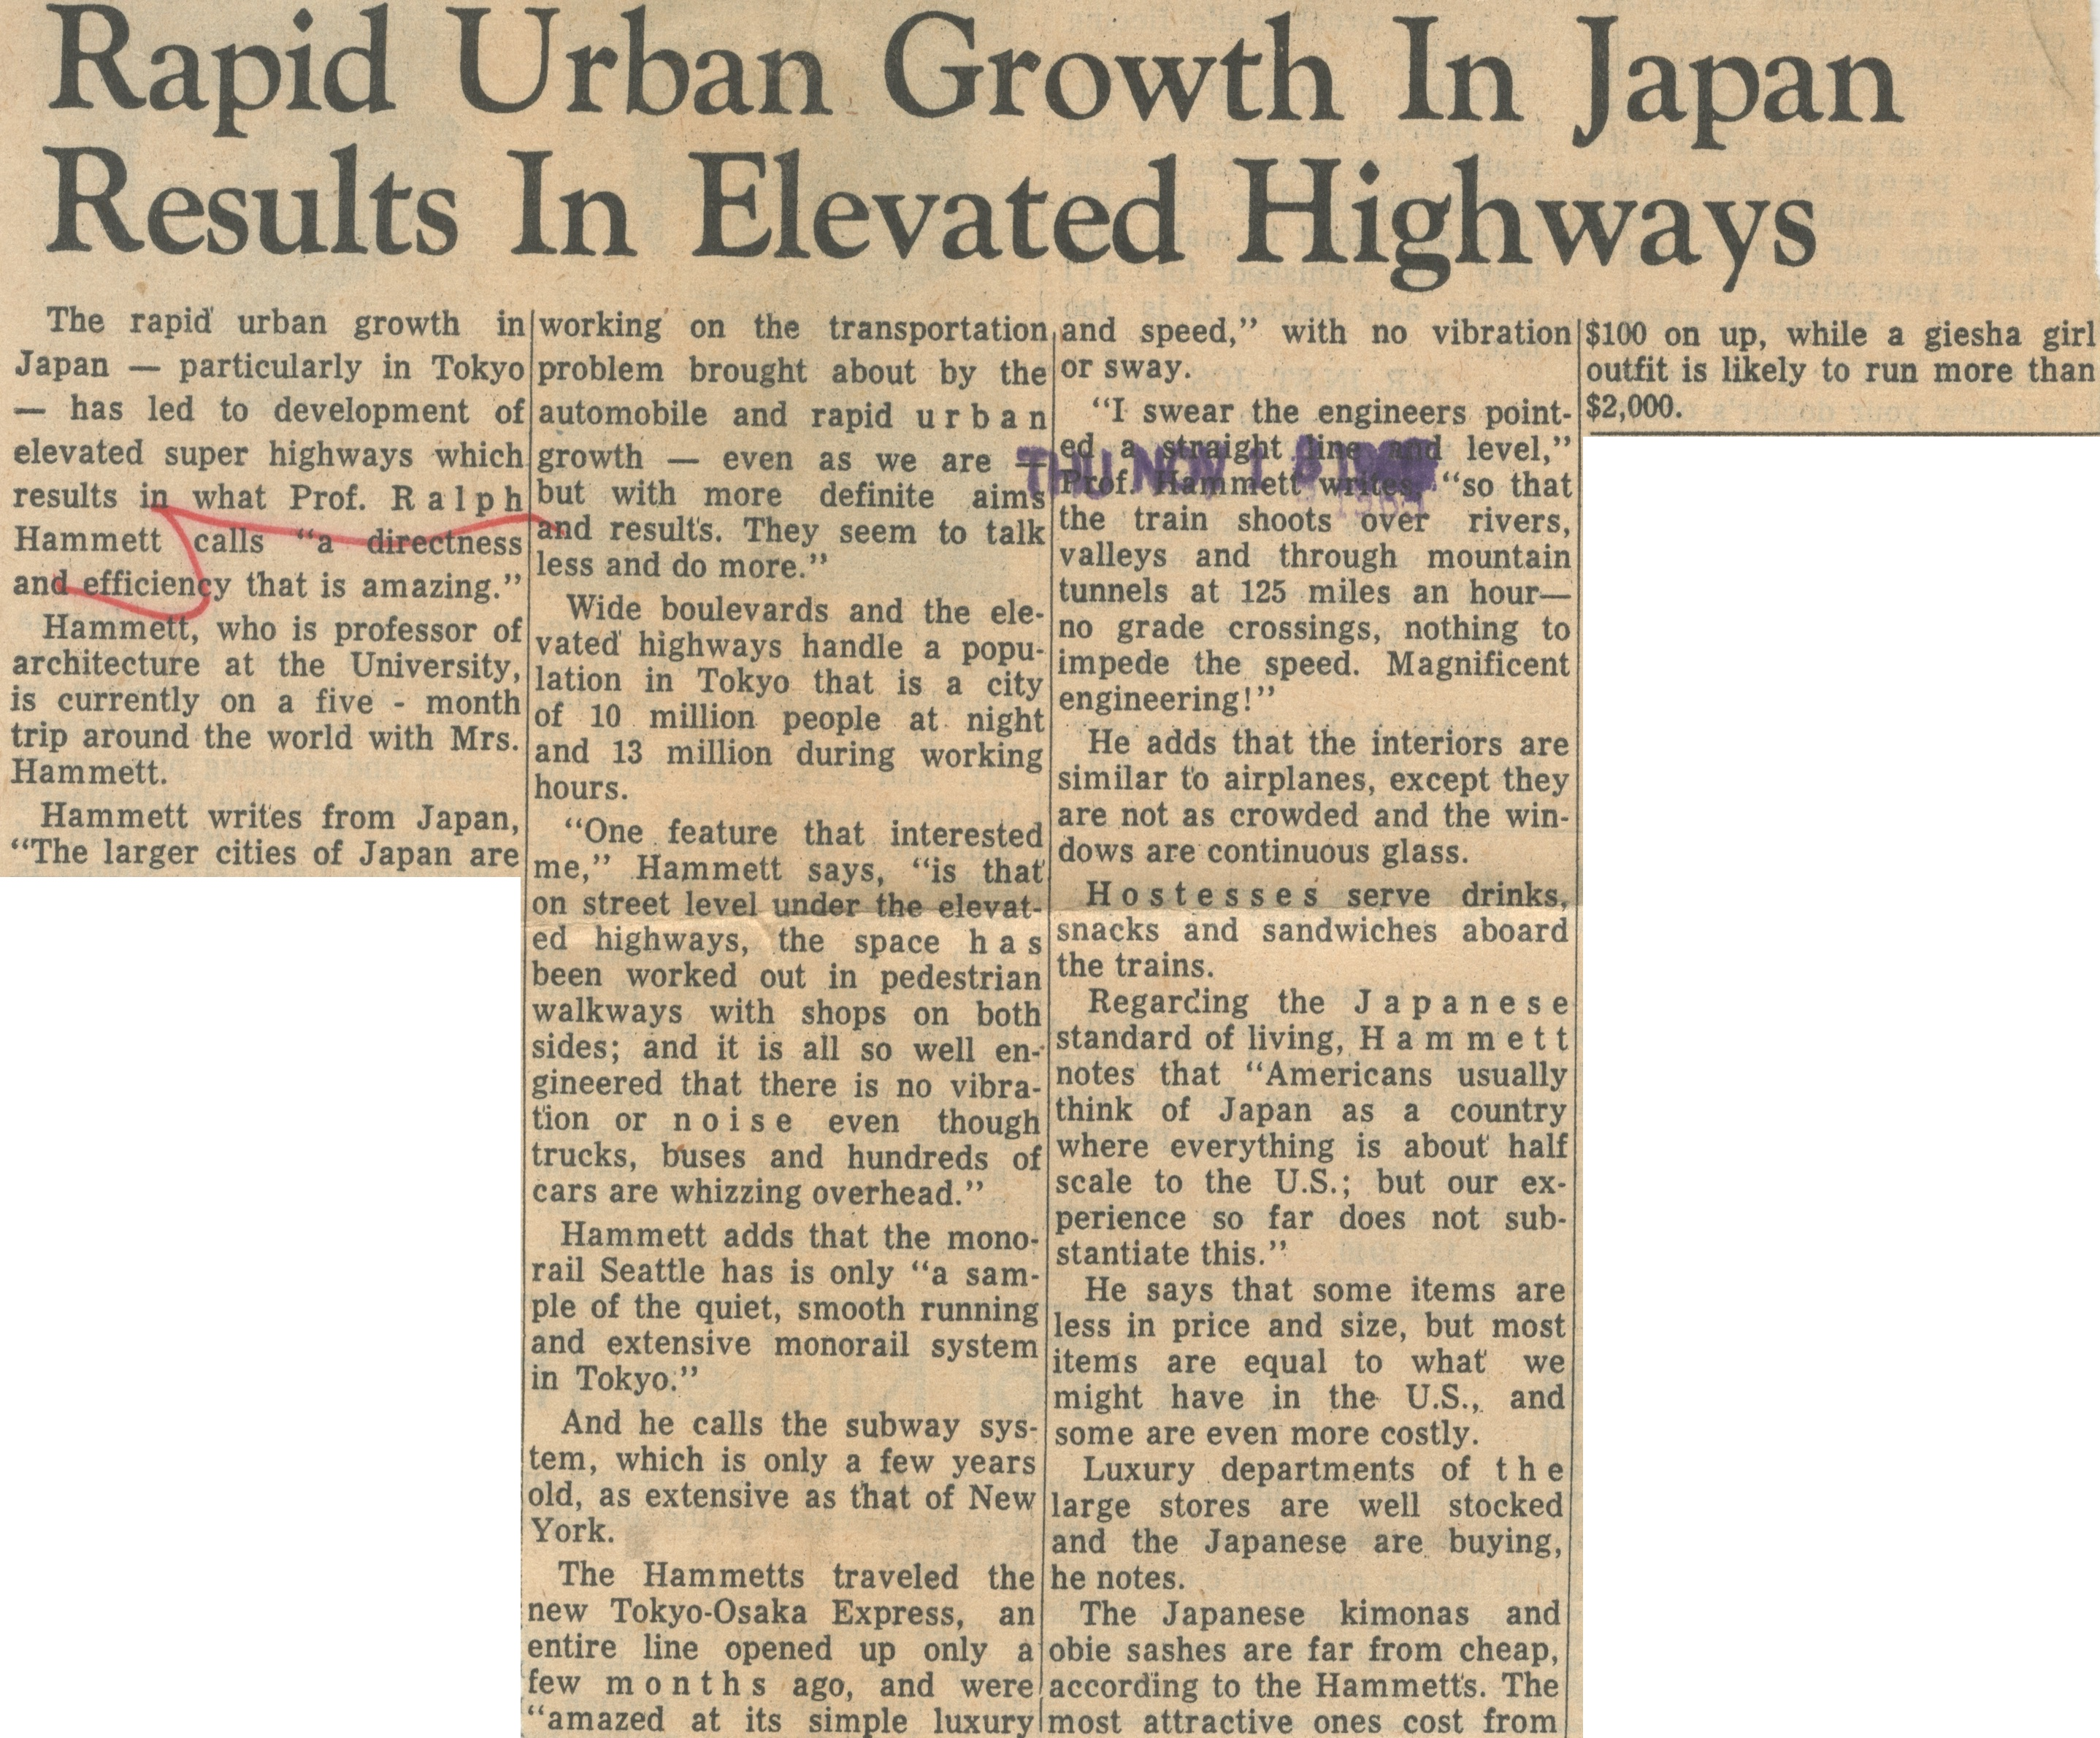 Rapid Urban Growth In Japan Results In Elevated Highways image